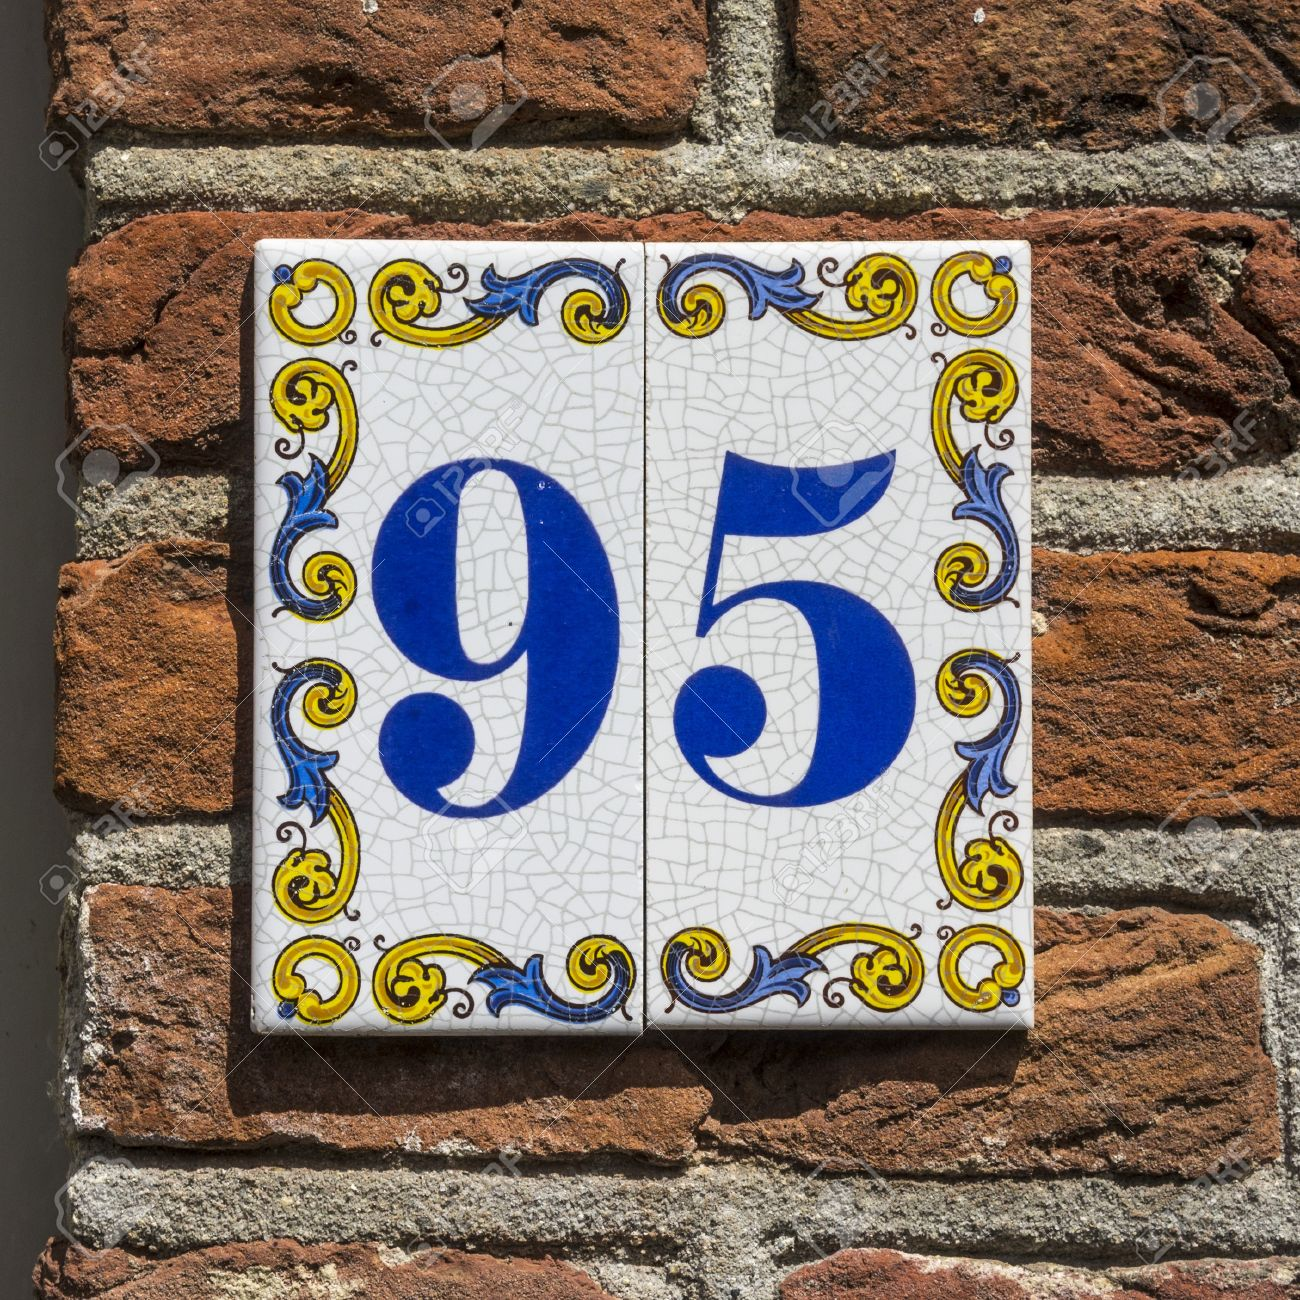 Ceramic house number tiles choice image tile flooring design ideas ceramic letter tiles choice image tile flooring design ideas ceramic number tiles image collections tile flooring doublecrazyfo Image collections